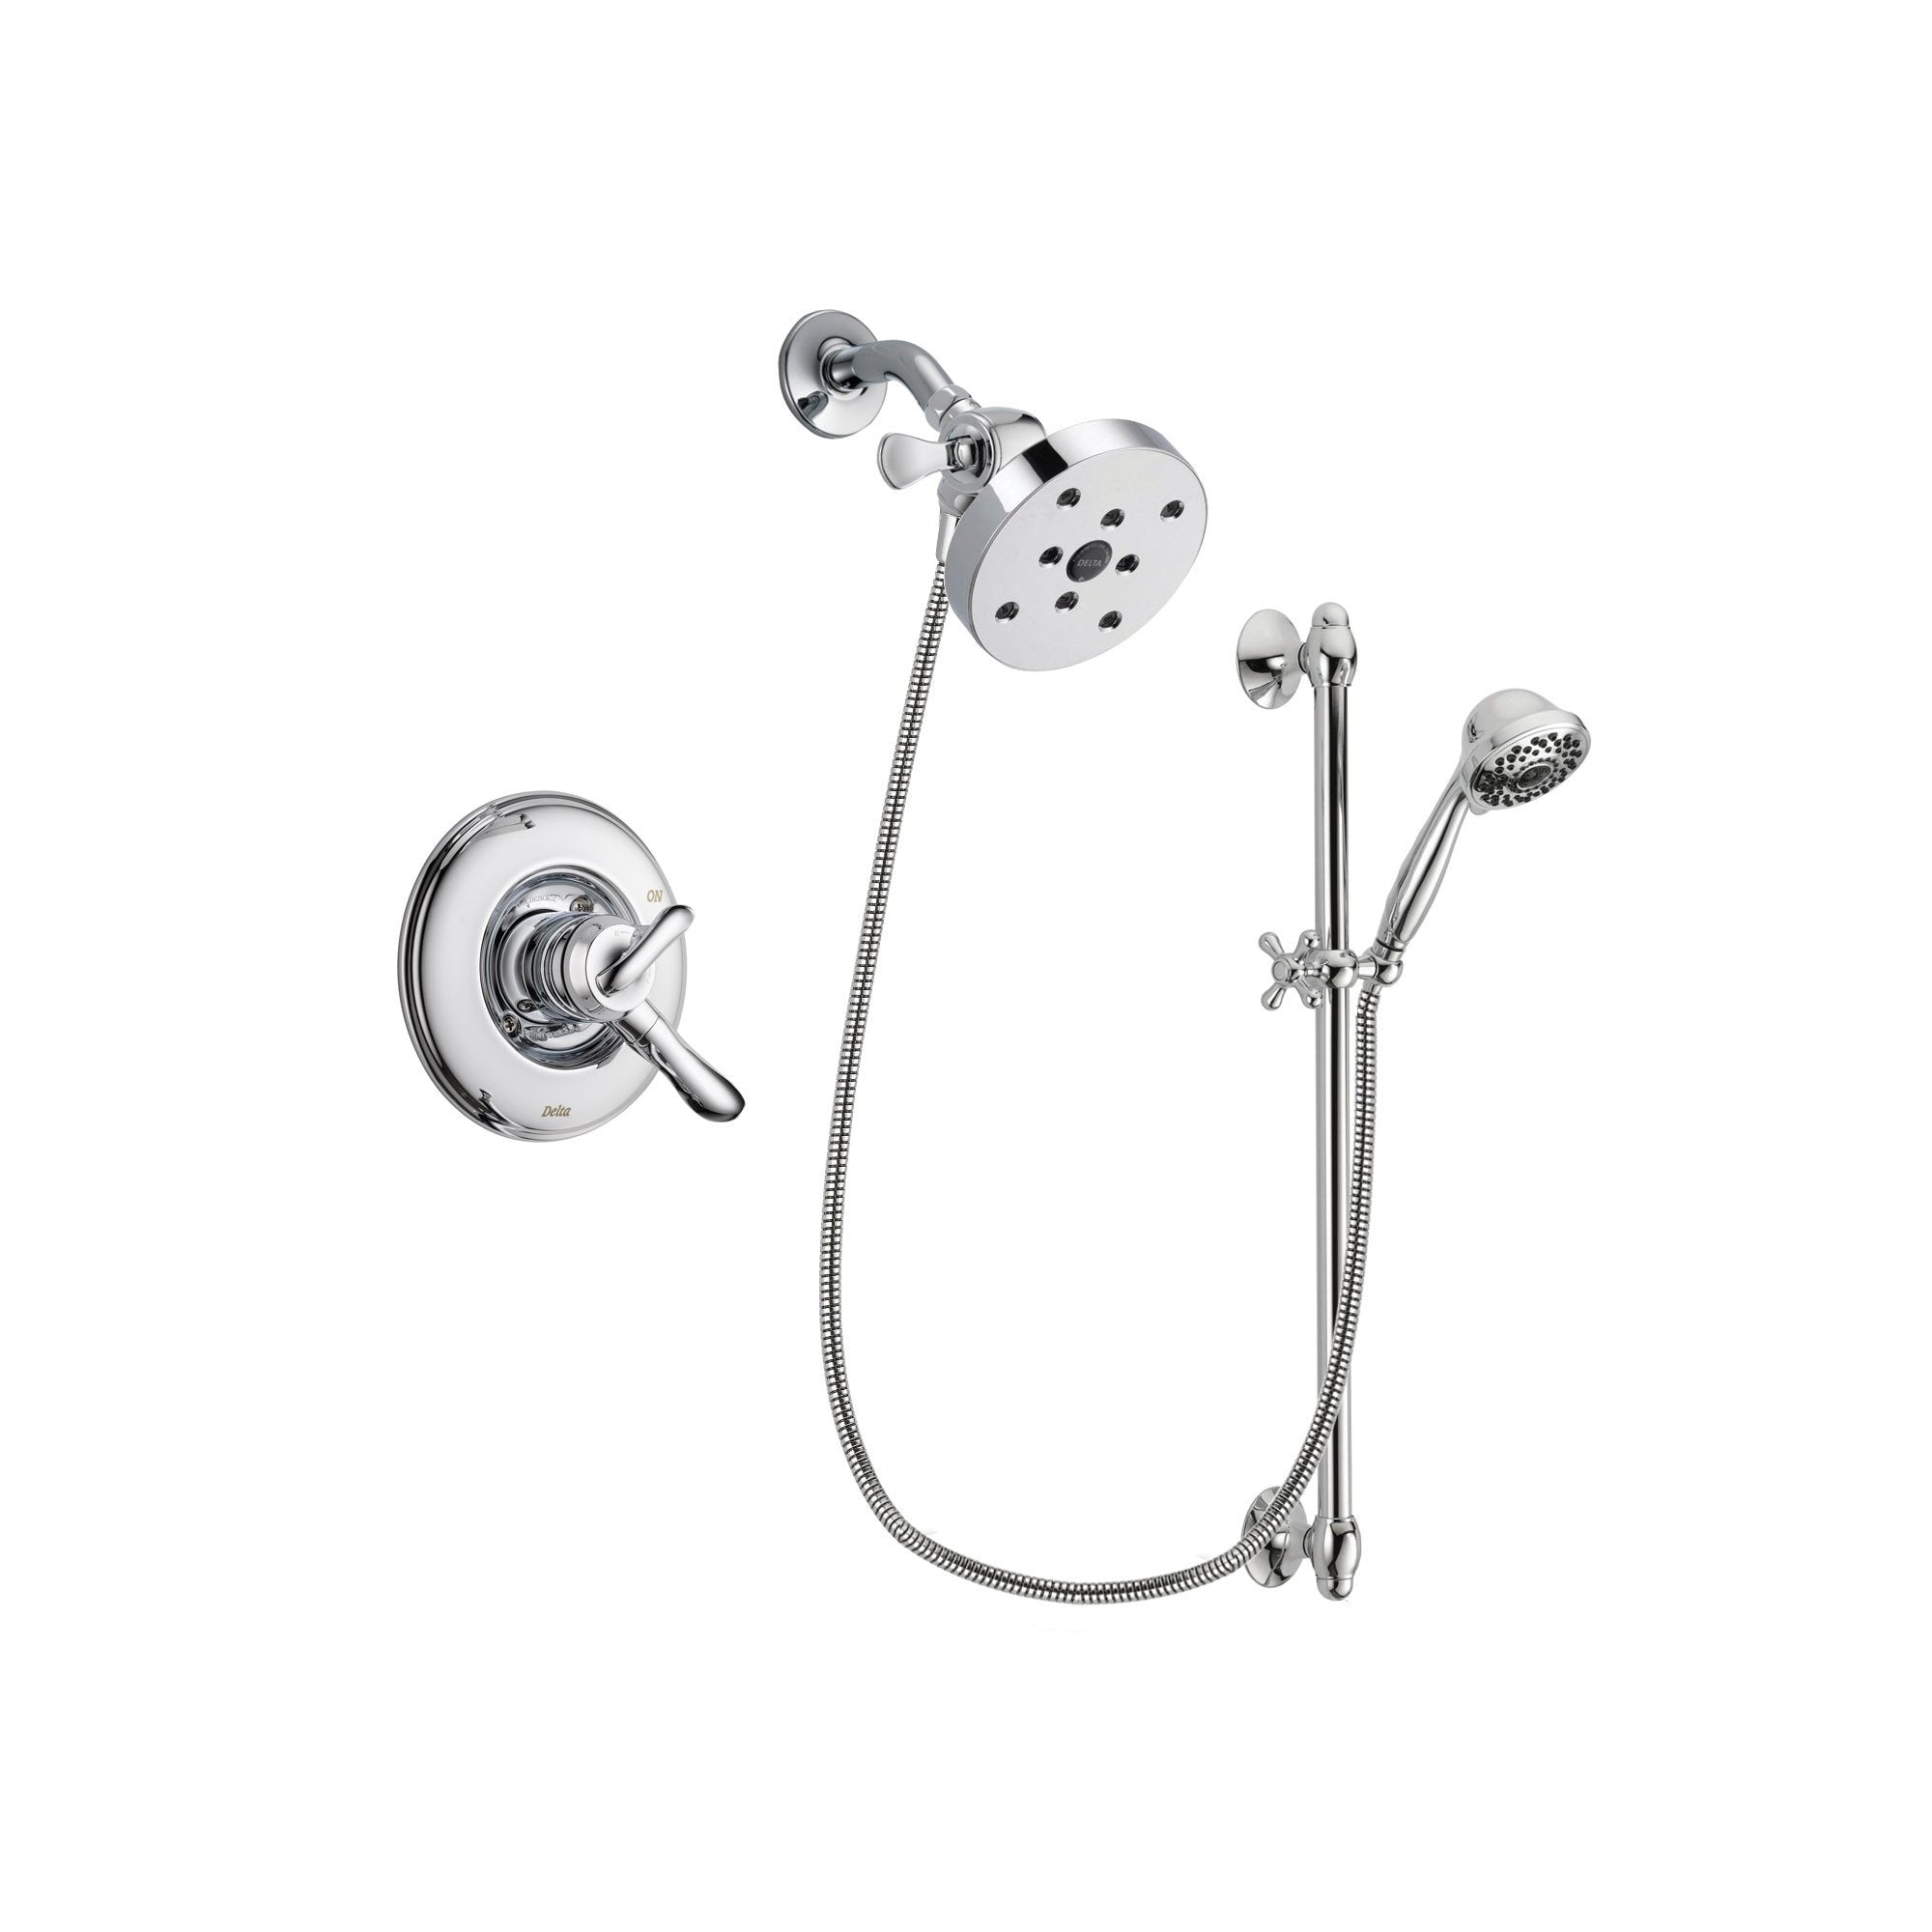 Delta Linden Chrome Shower Faucet System w/ Shower Head and Hand Shower DSP0694V